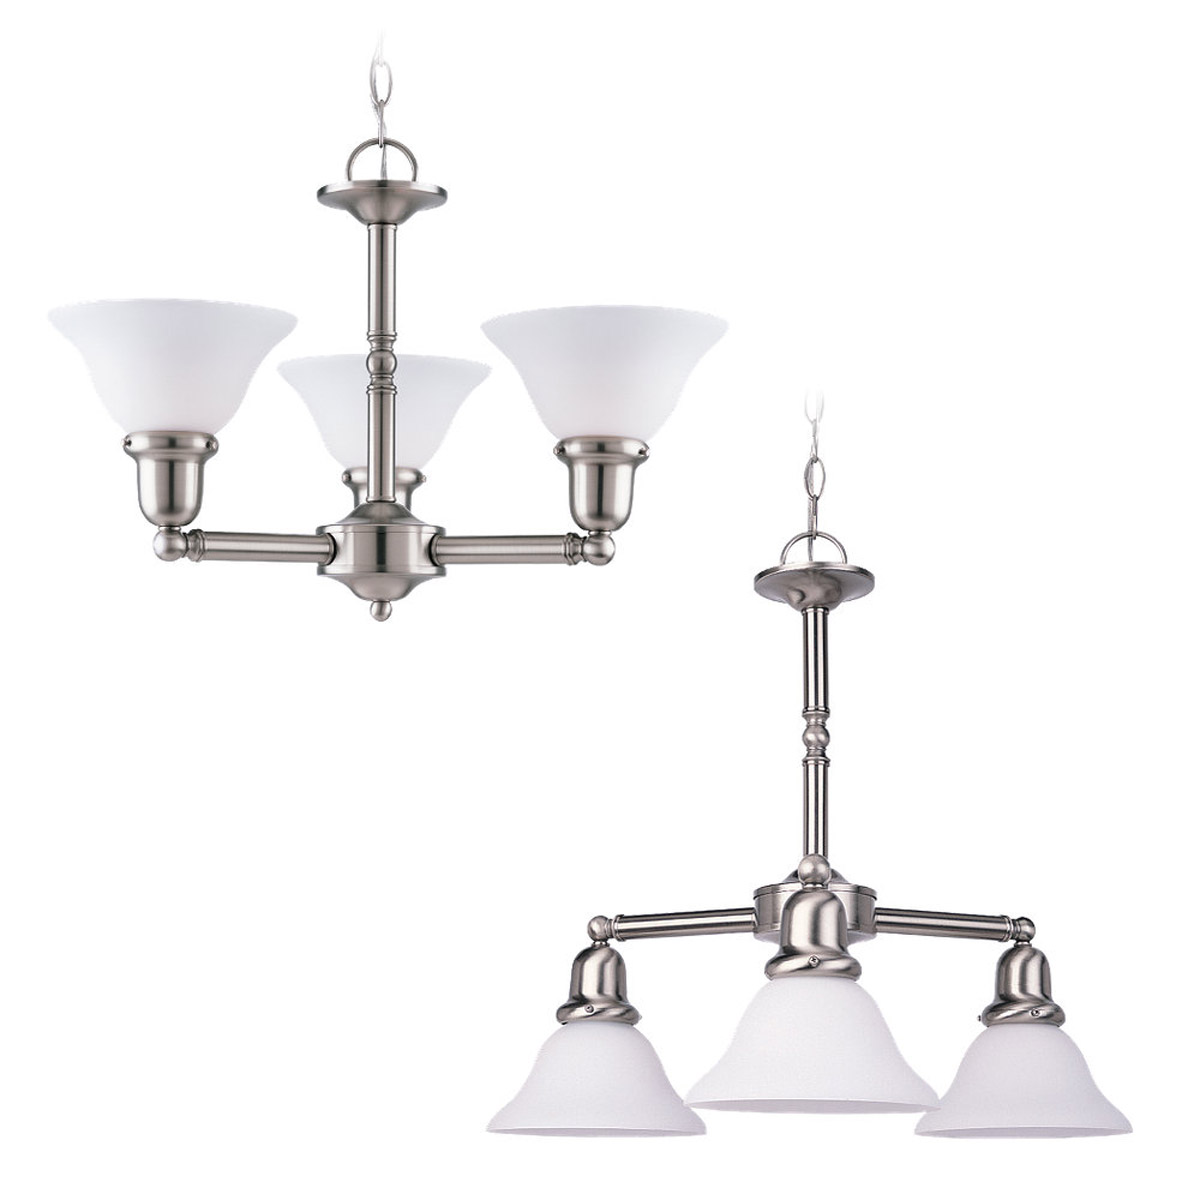 Sea Gull 31060-962 Sussex 3 Light 22 inch Brushed Nickel Chandelier Ceiling Light in Satin White Glass photo